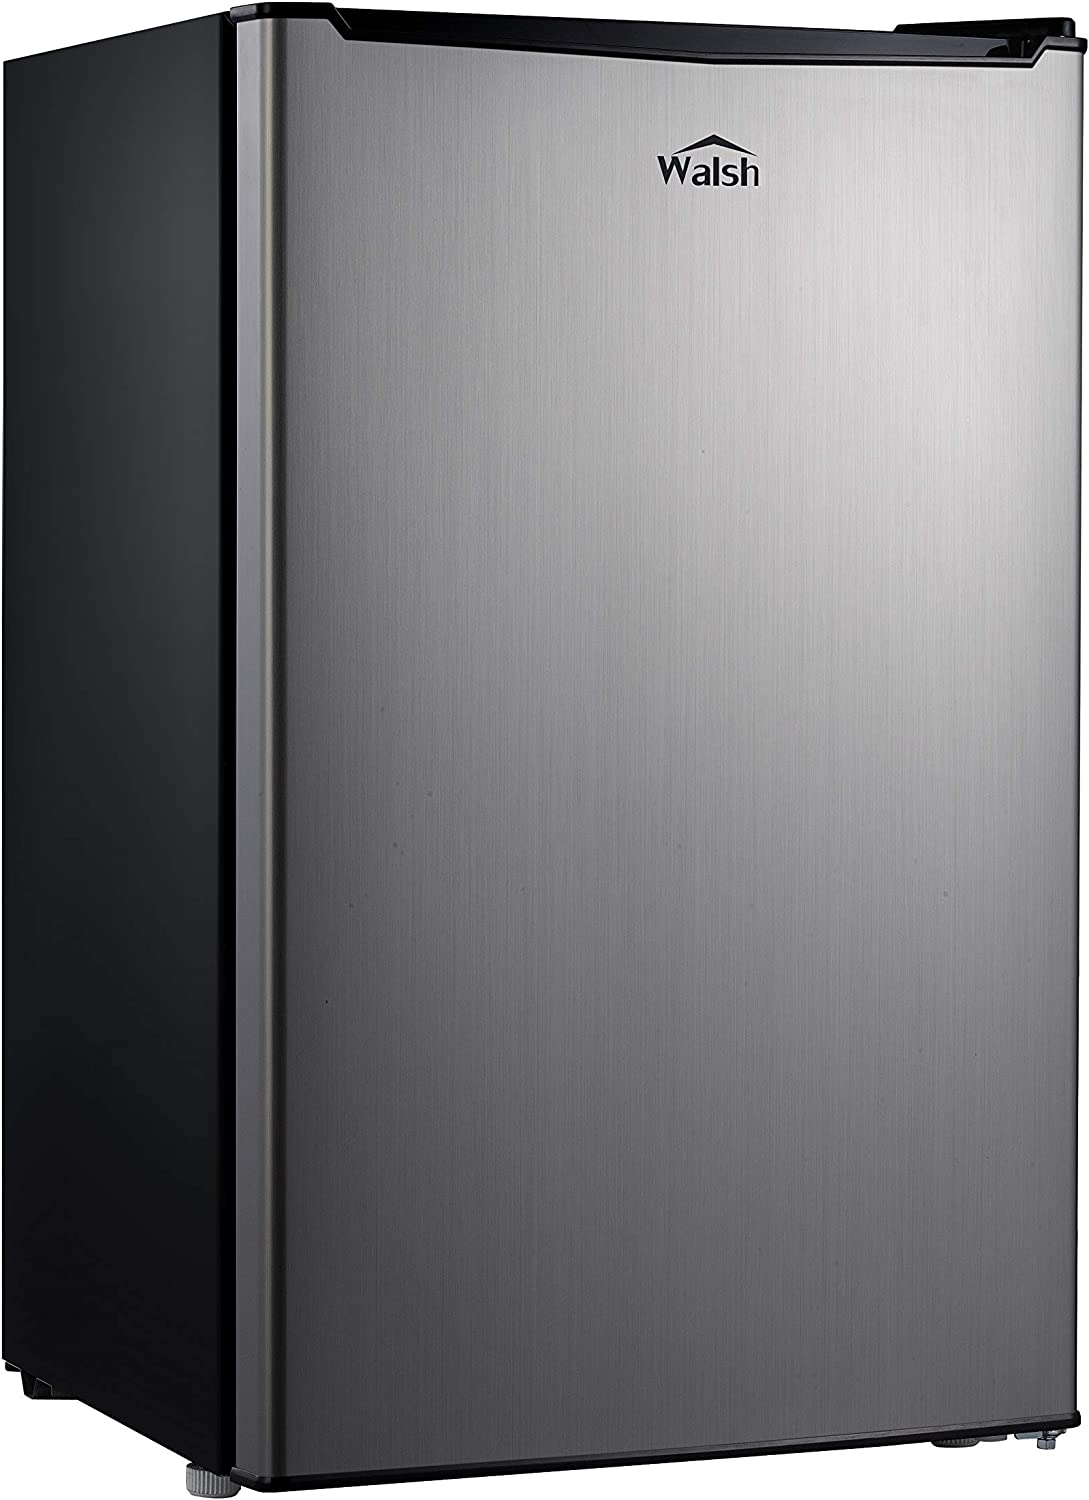 Walsh WSR35S1 Compact Refrigerator Single Door Fridge Adjustable Mechanical Thermostat with Chiller, 3.5 Cu.ft, Stainless Steel Look